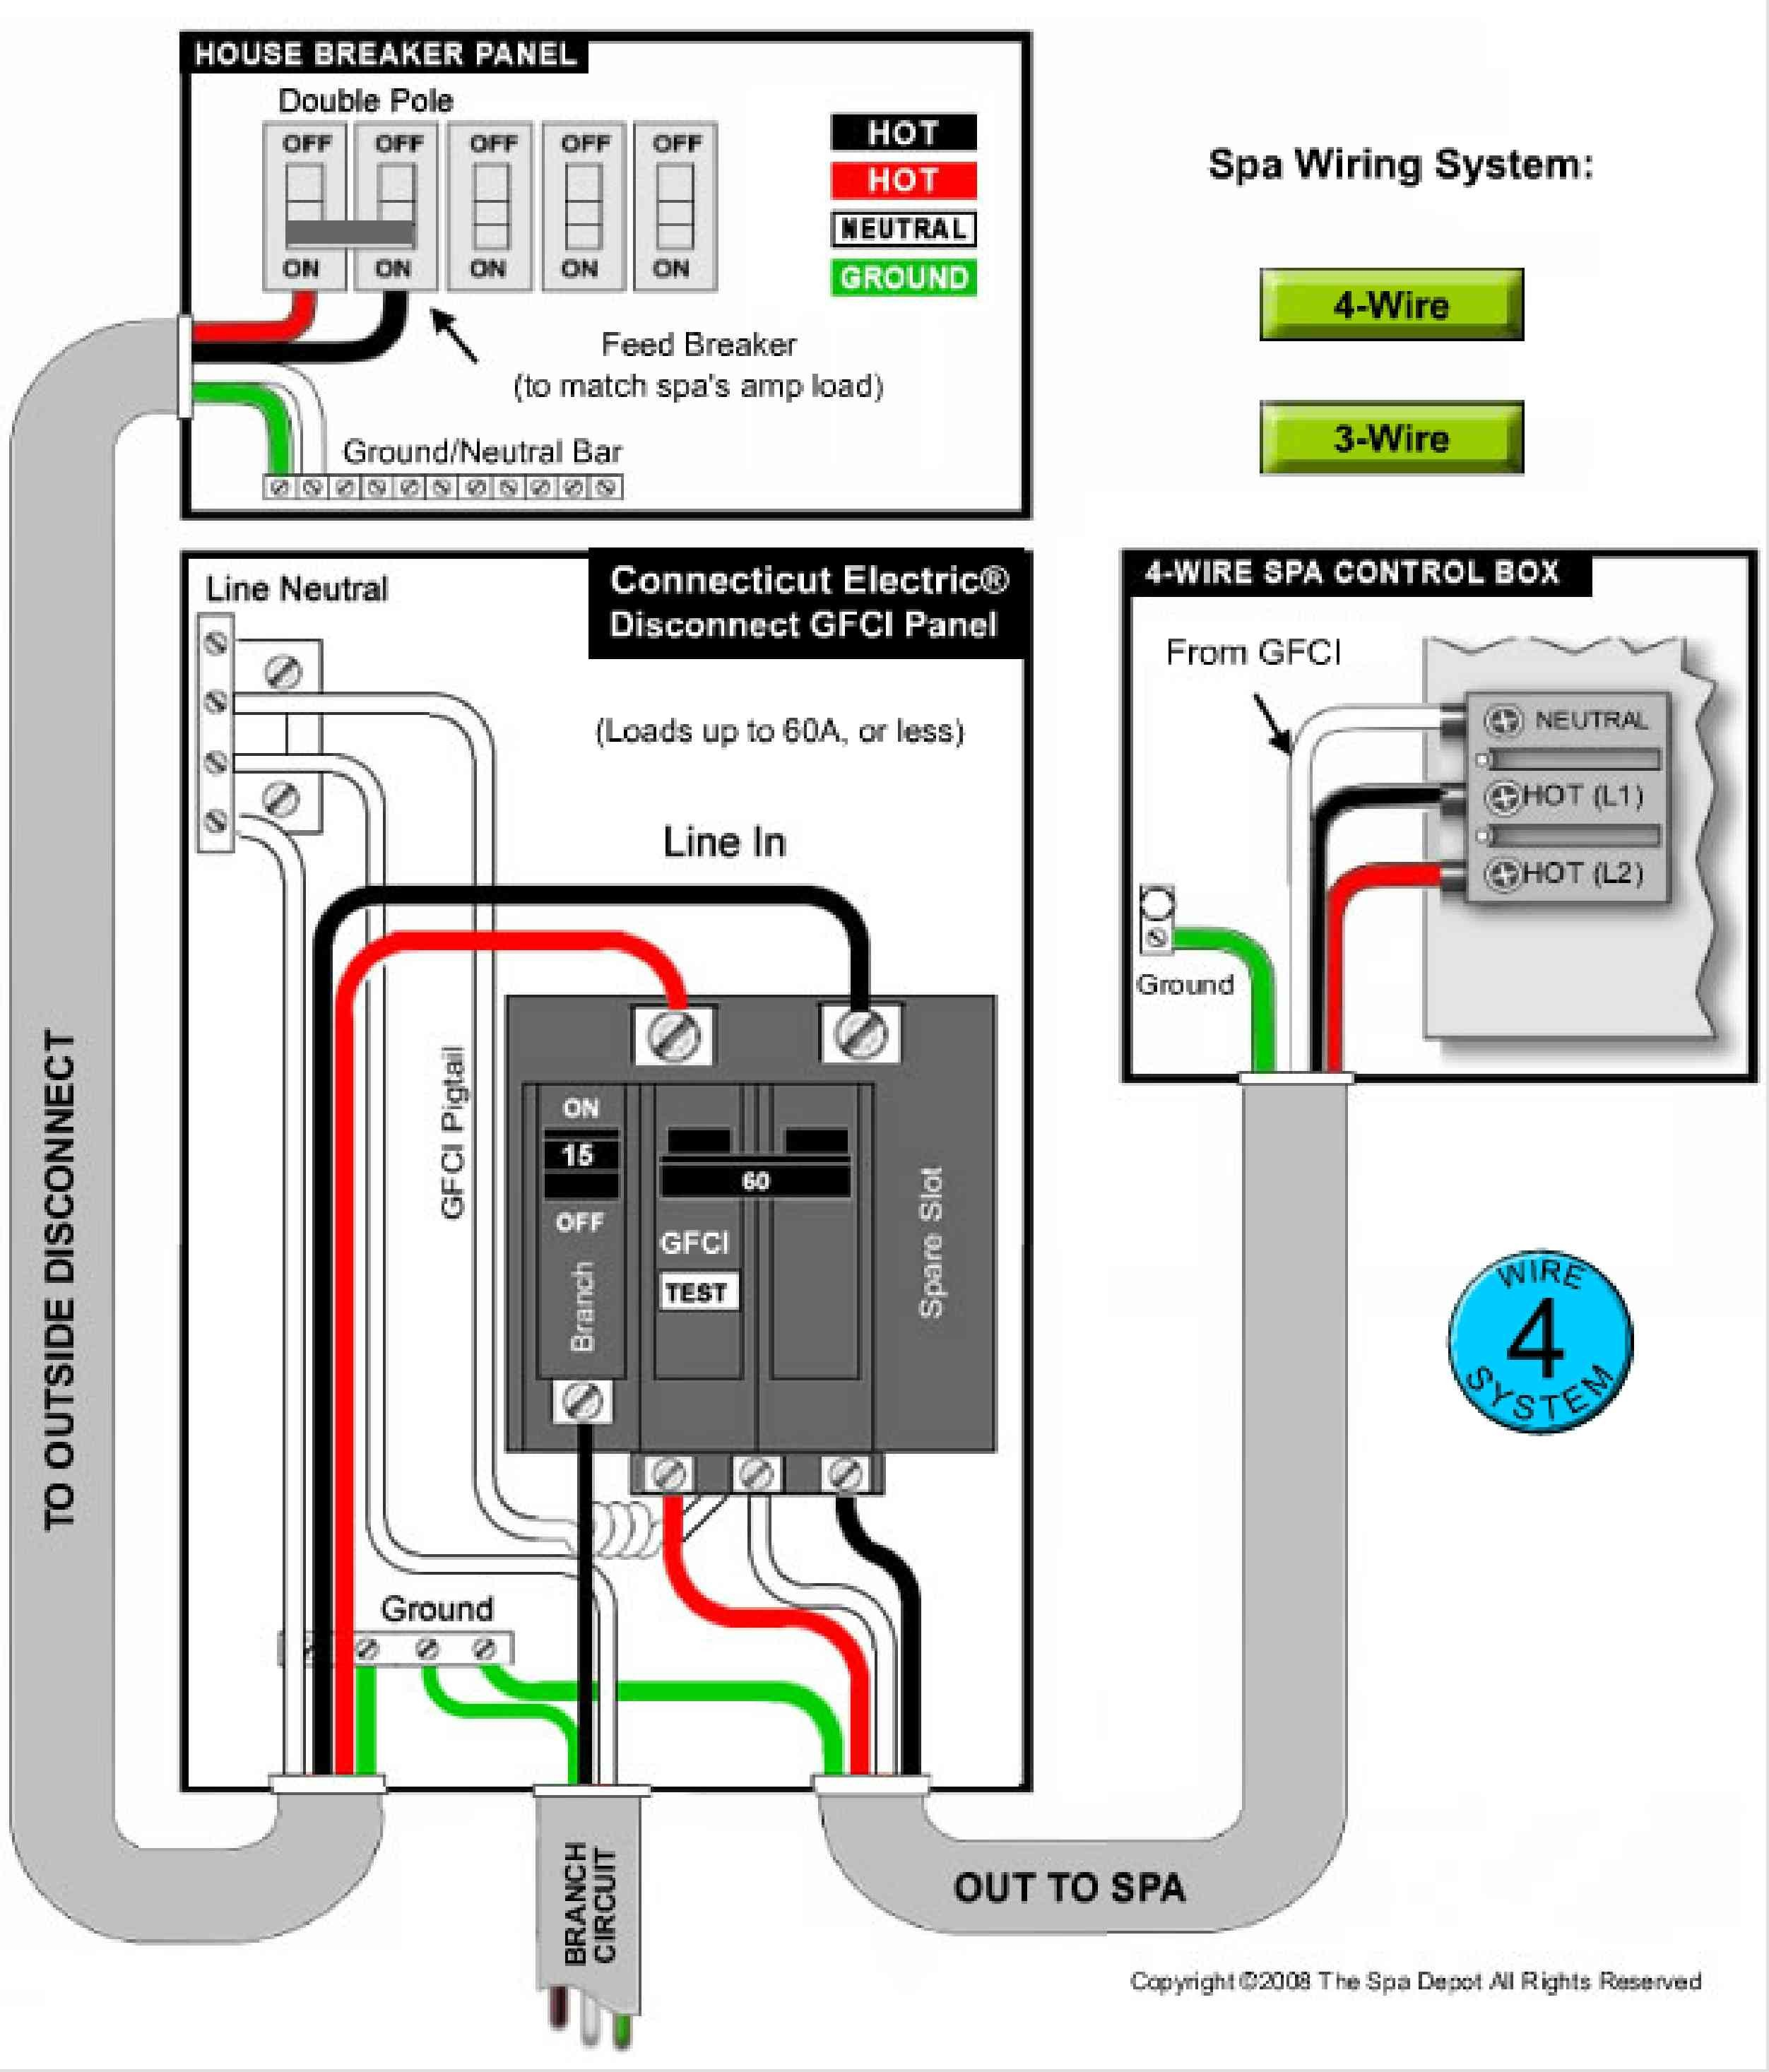 jacuzzi spa wiring diagrams wiring diagramcoleman spa wiring diagram 3 3 kenmo lp de \\